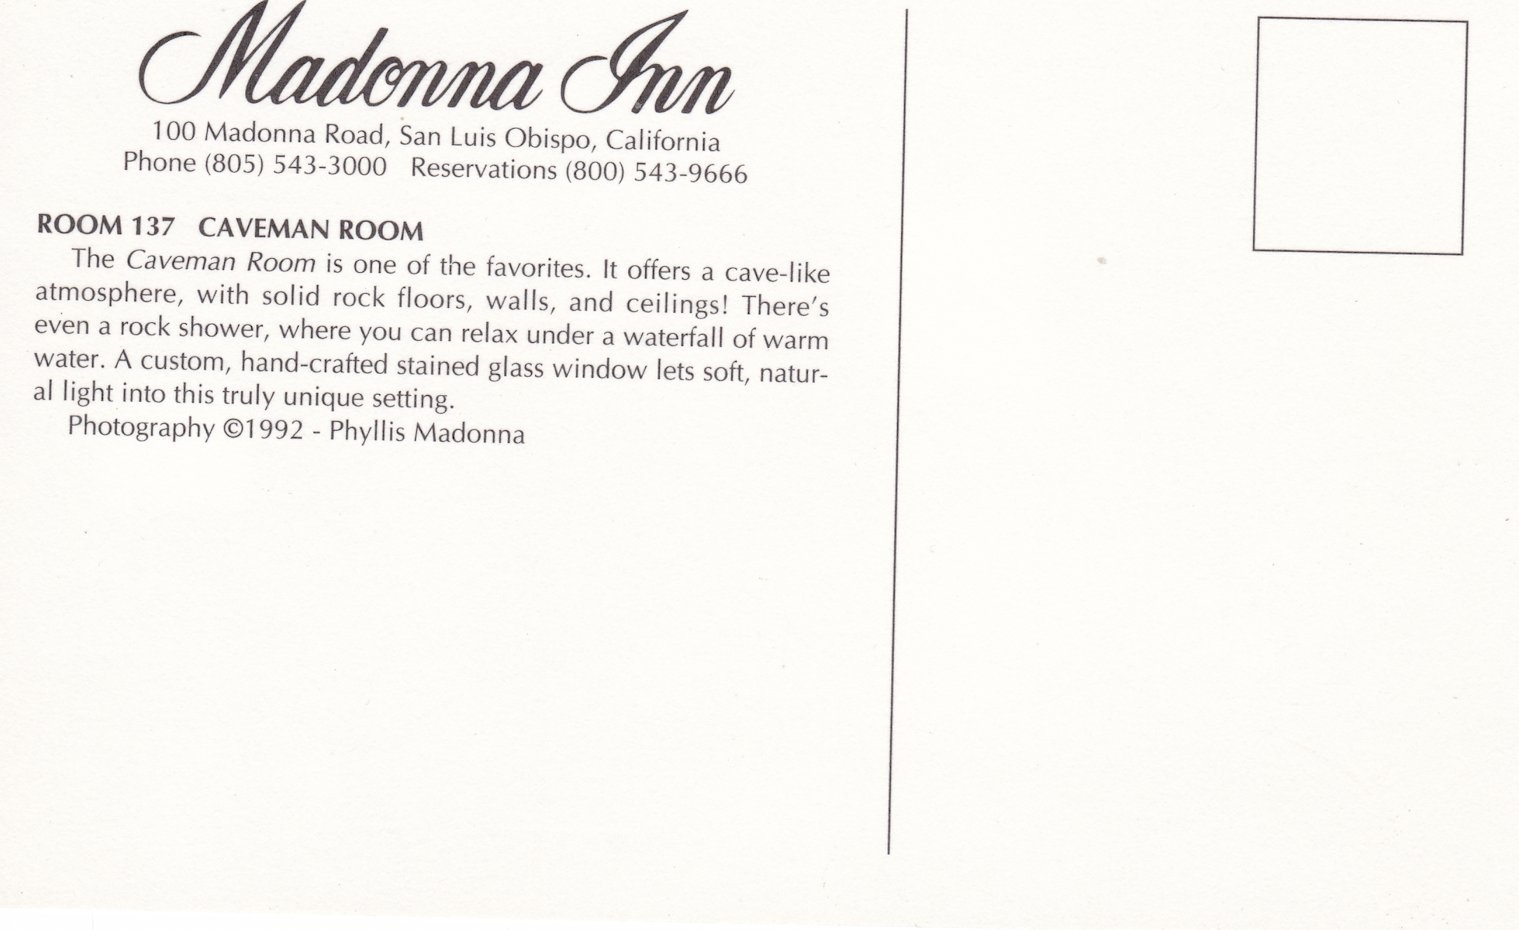 Madonna Inn Postcards The Men S Room And The Caveman Room Collectors Weekly